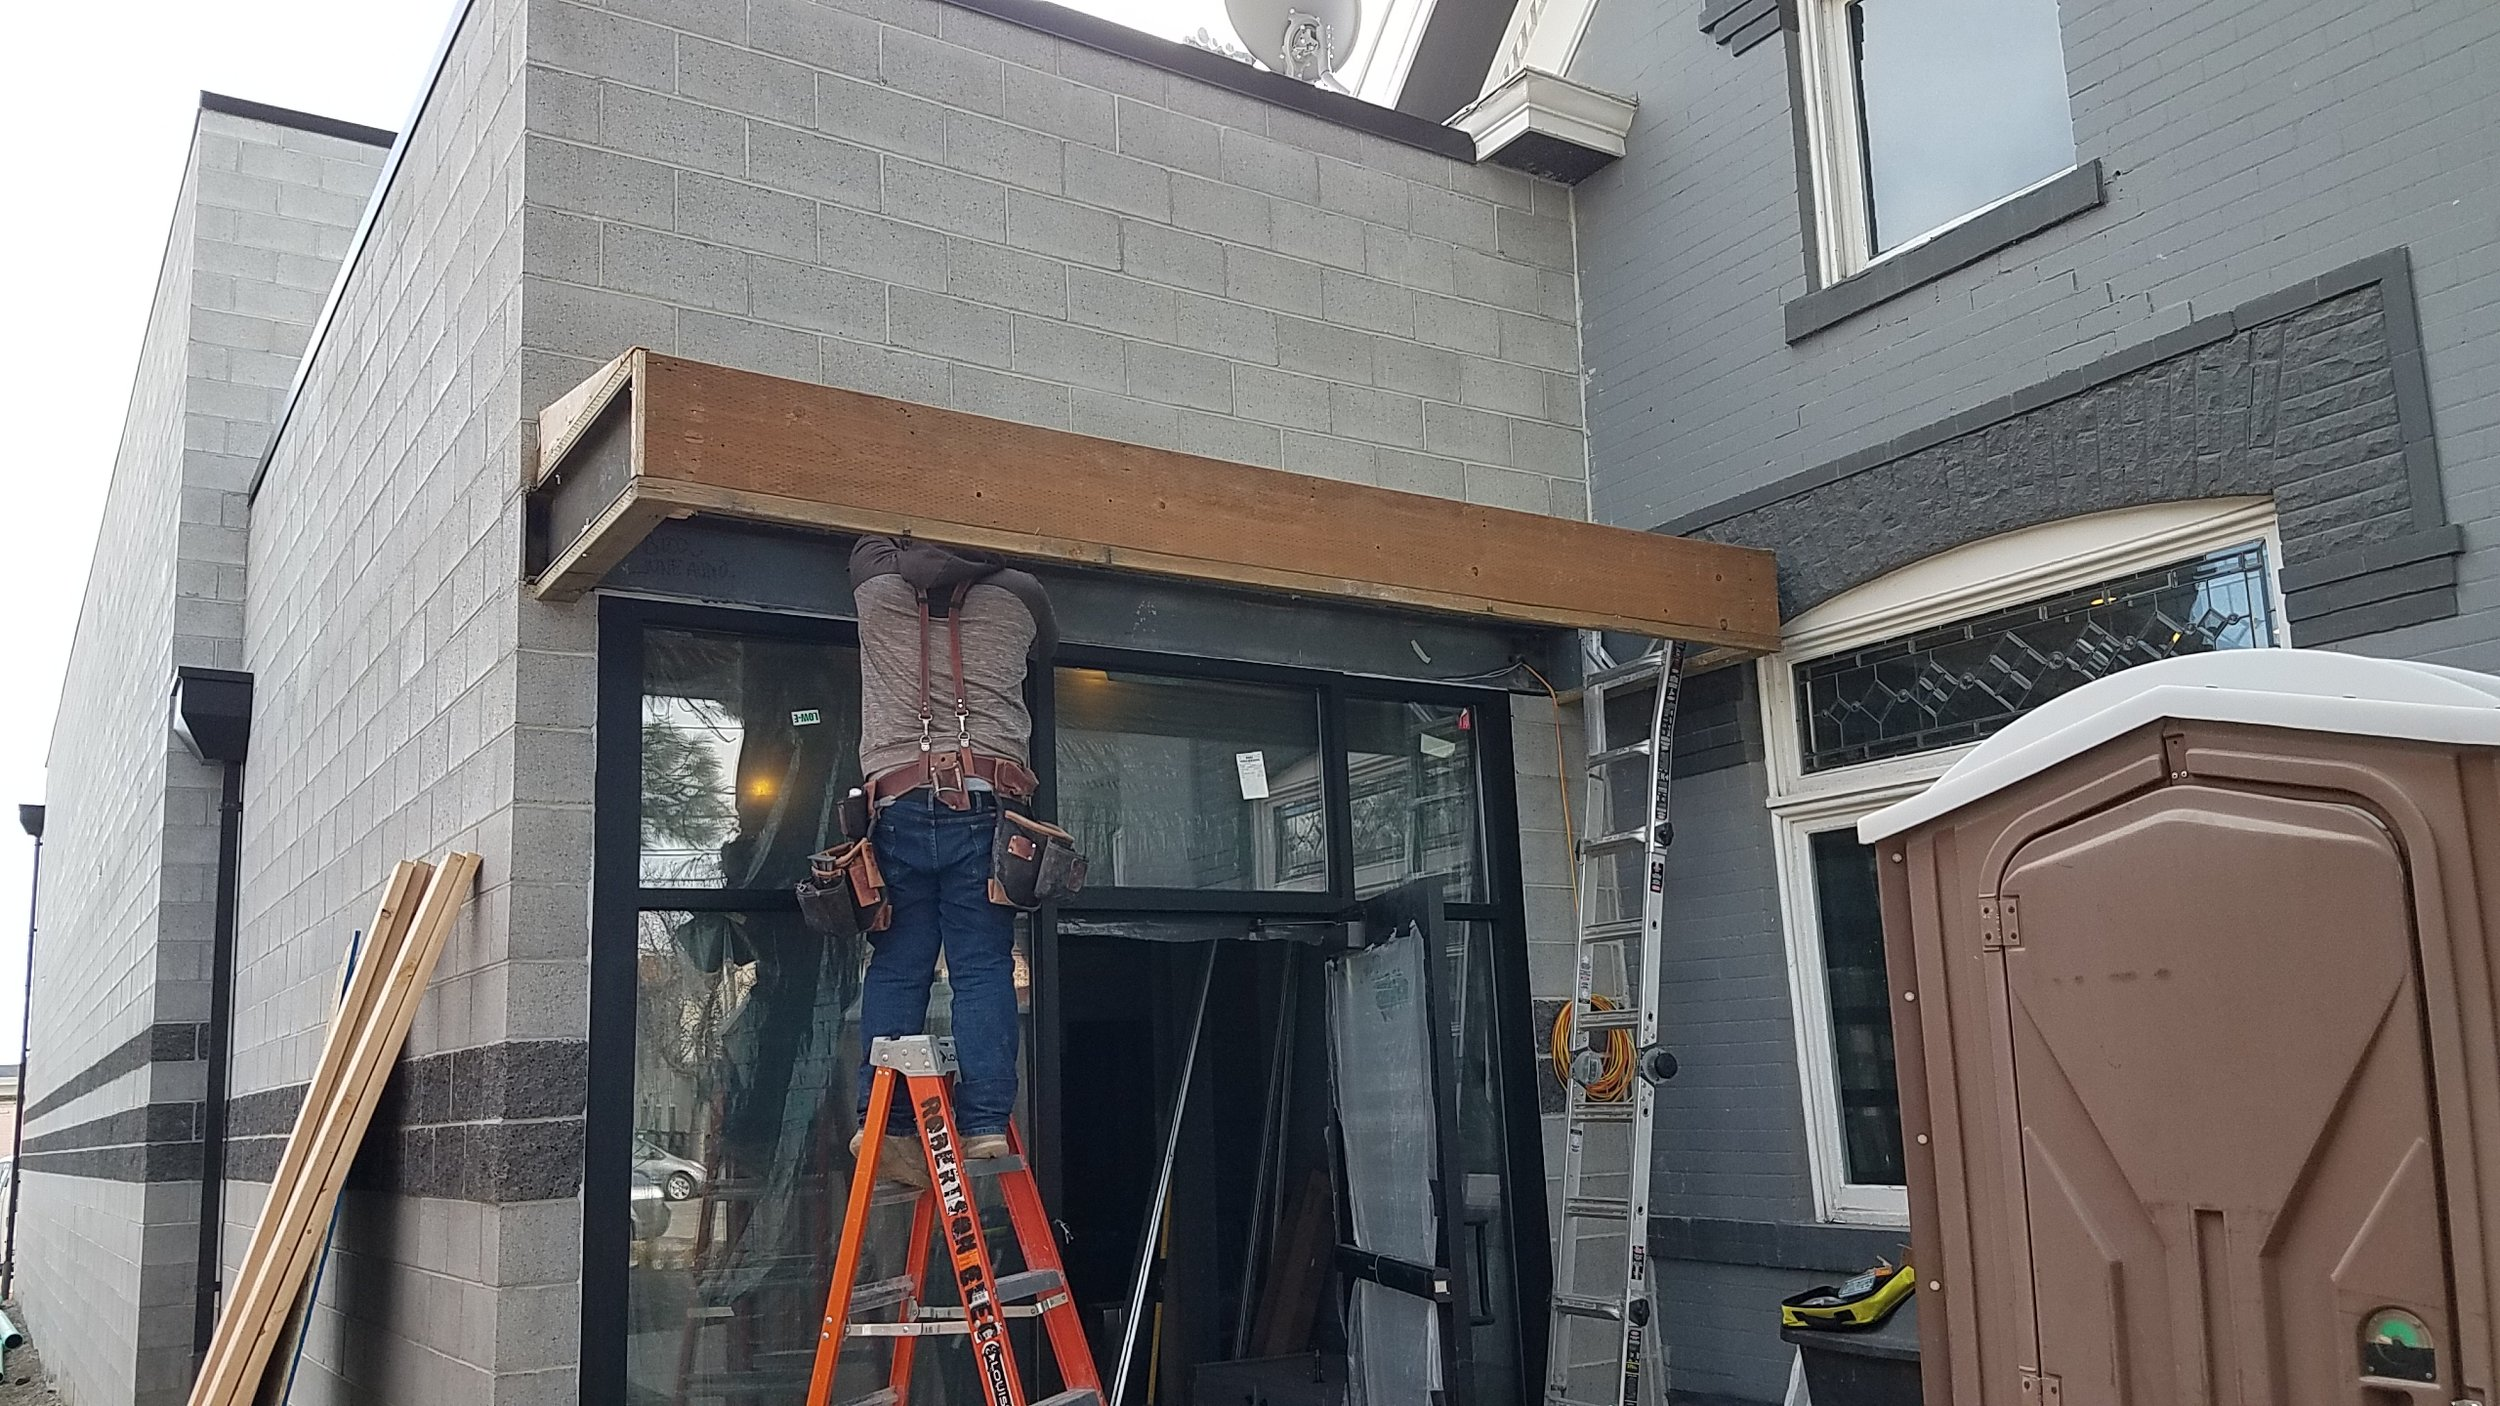 Our canopy out front was framed up this week as well.